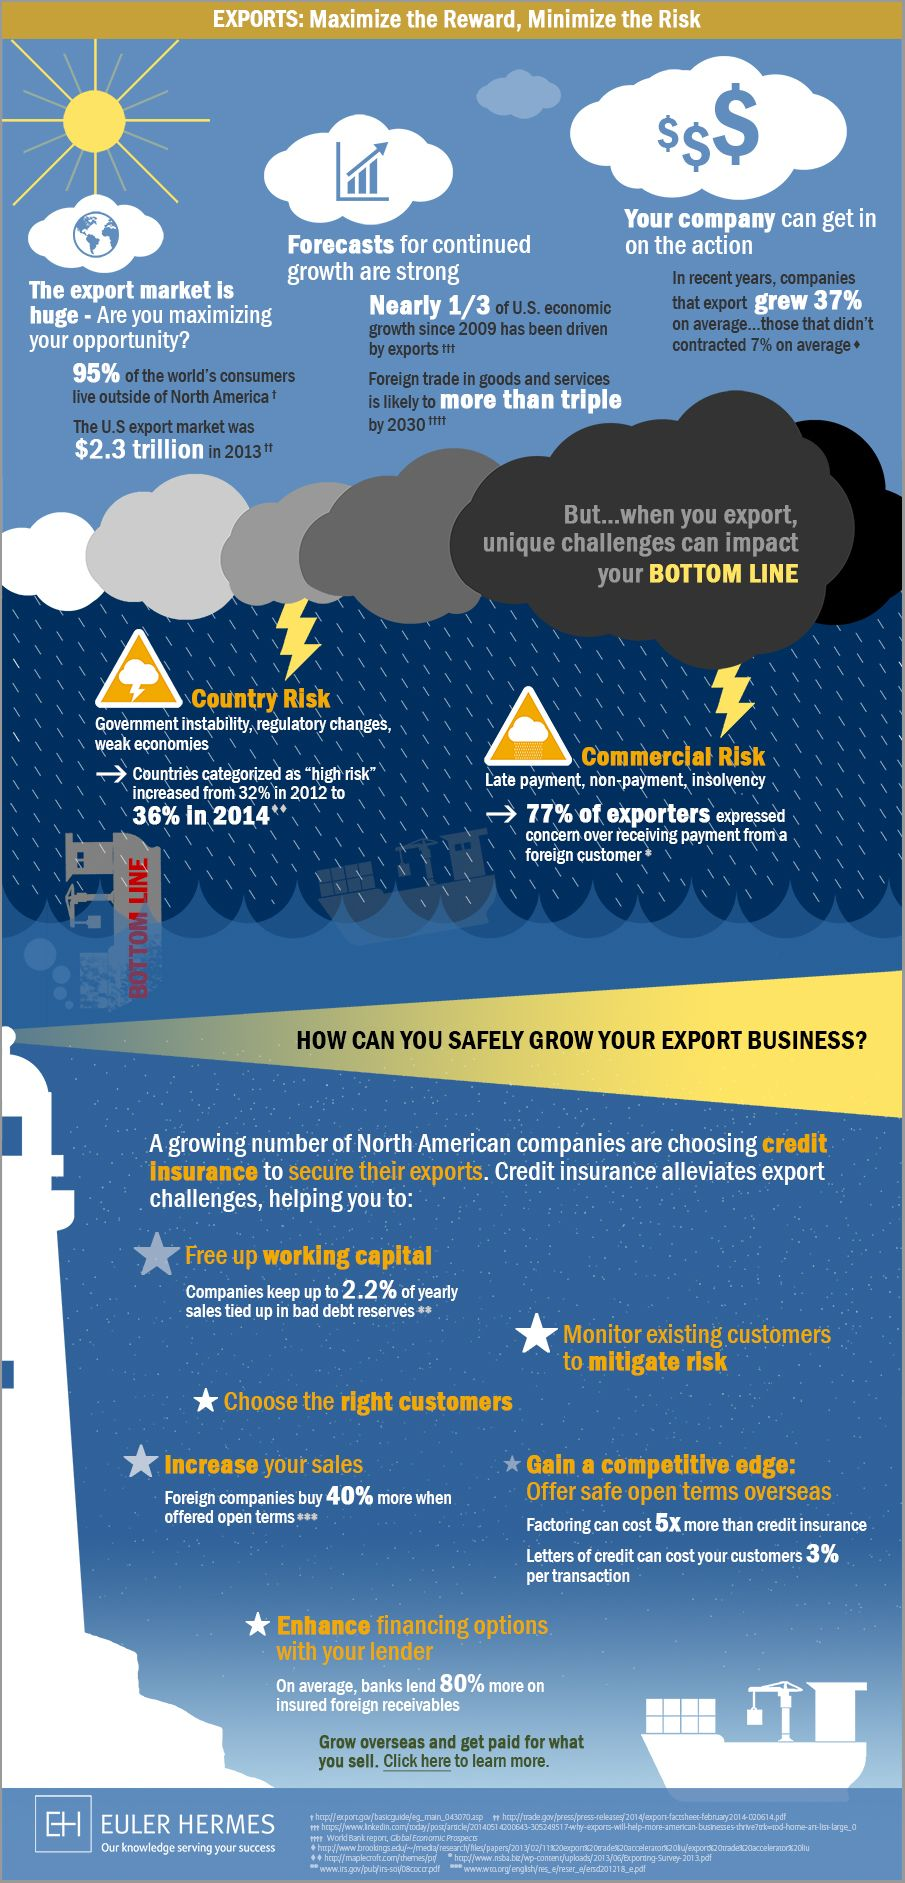 Export credit insurance helps companies remain competitive